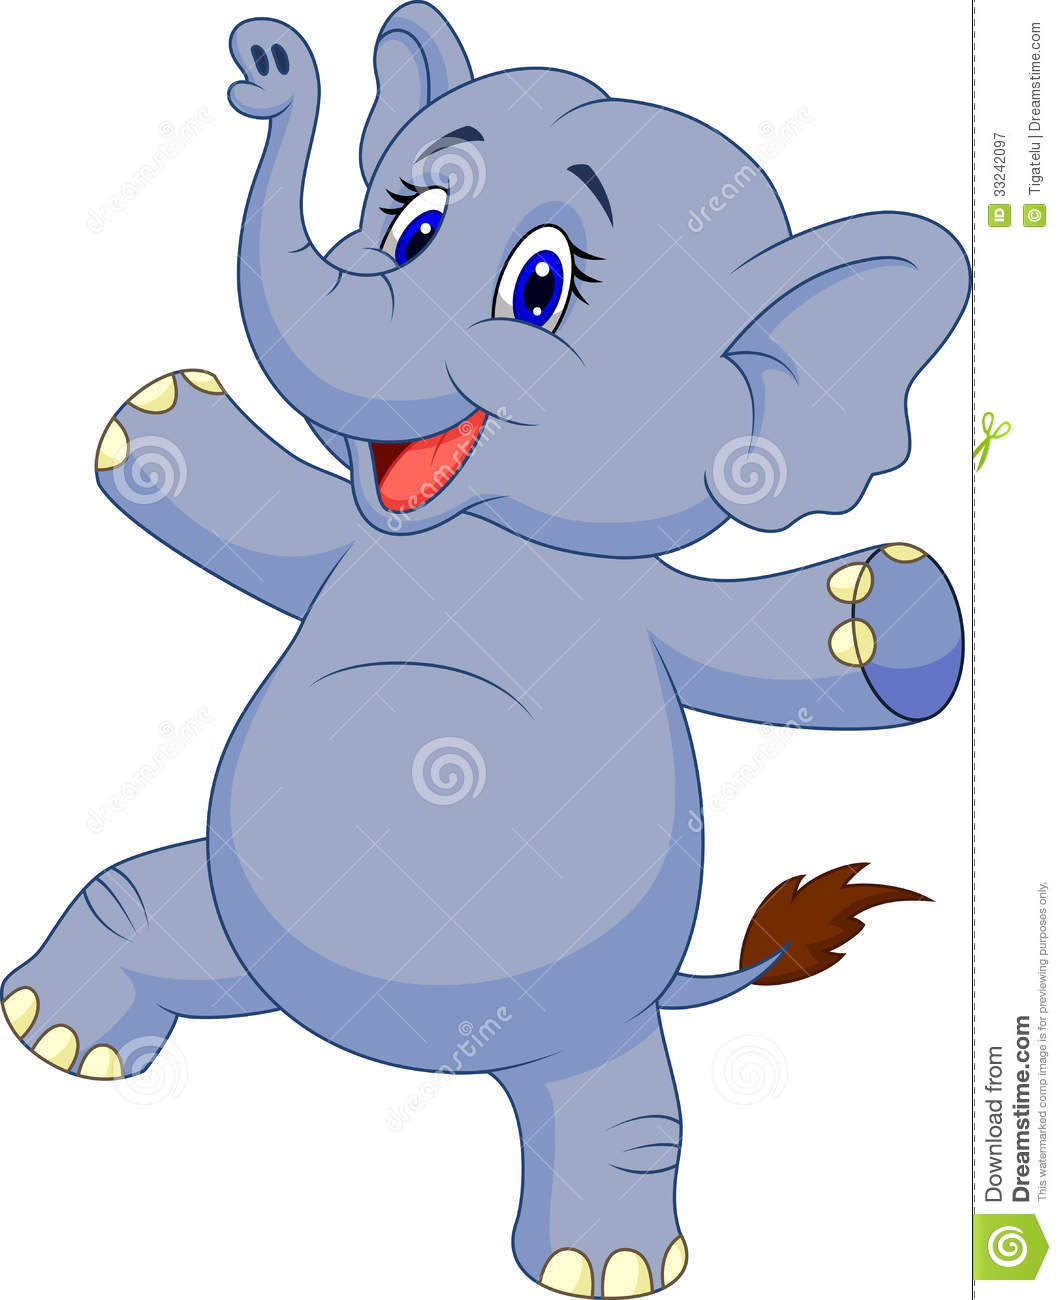 Cute Cartoon Baby Elephant on coloring map of the united states